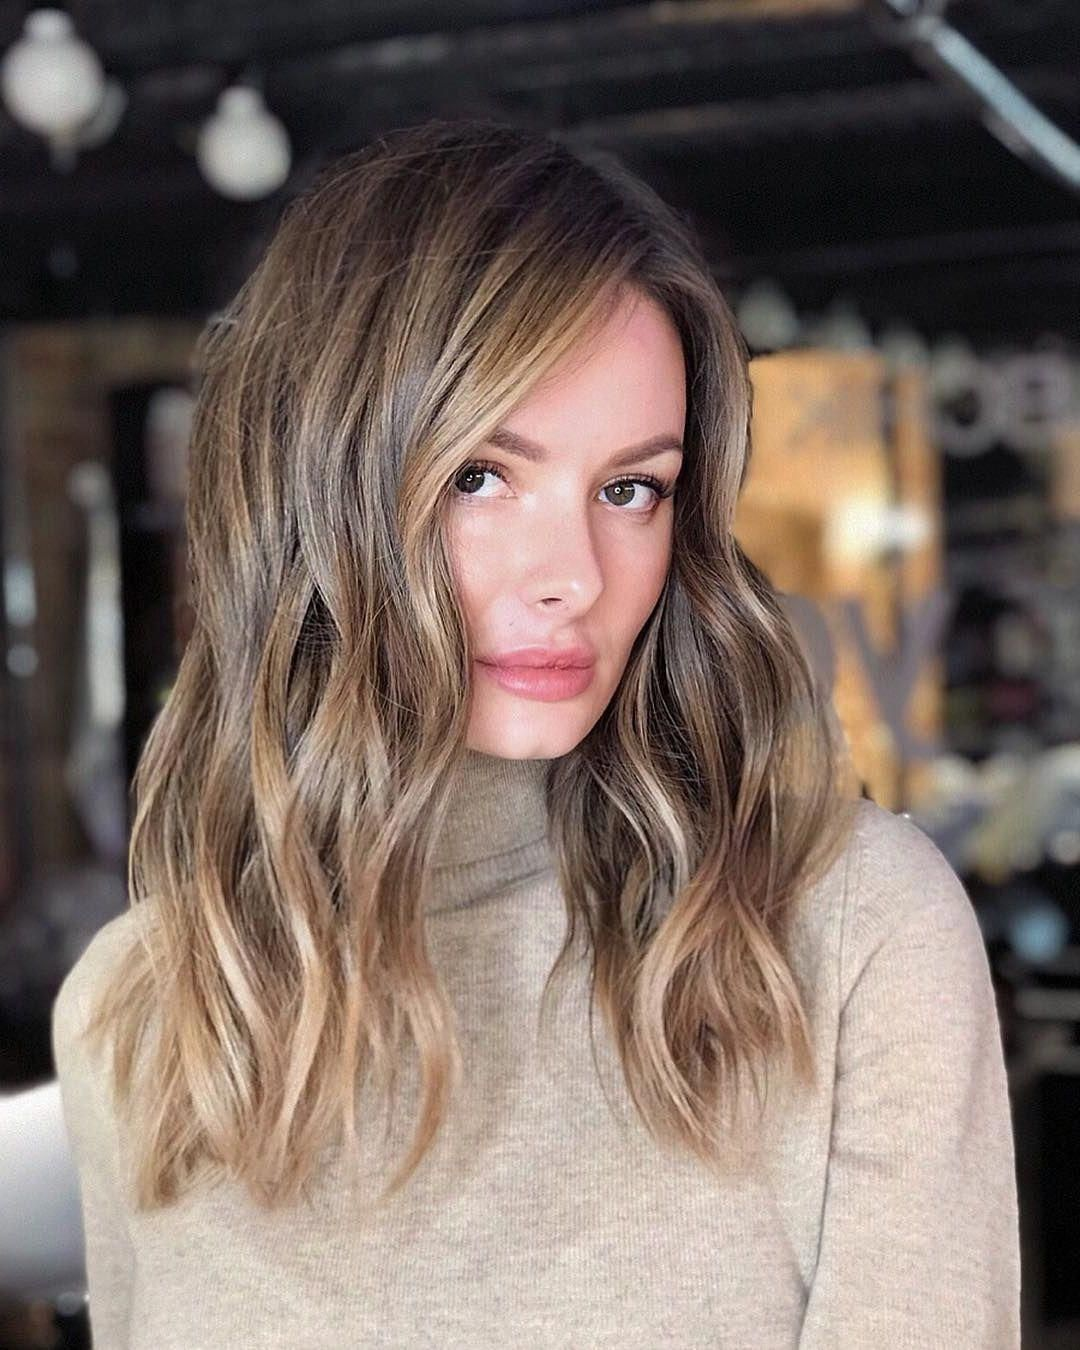 50 Natural Blonde Highlights To Do At Home, Do natural blondes really have more fun? Whether channeling a platinum shade à la Monroe or our most recent color crush, ash blonde, we're findin..., Blonde #blondeombre #naturalashblonde